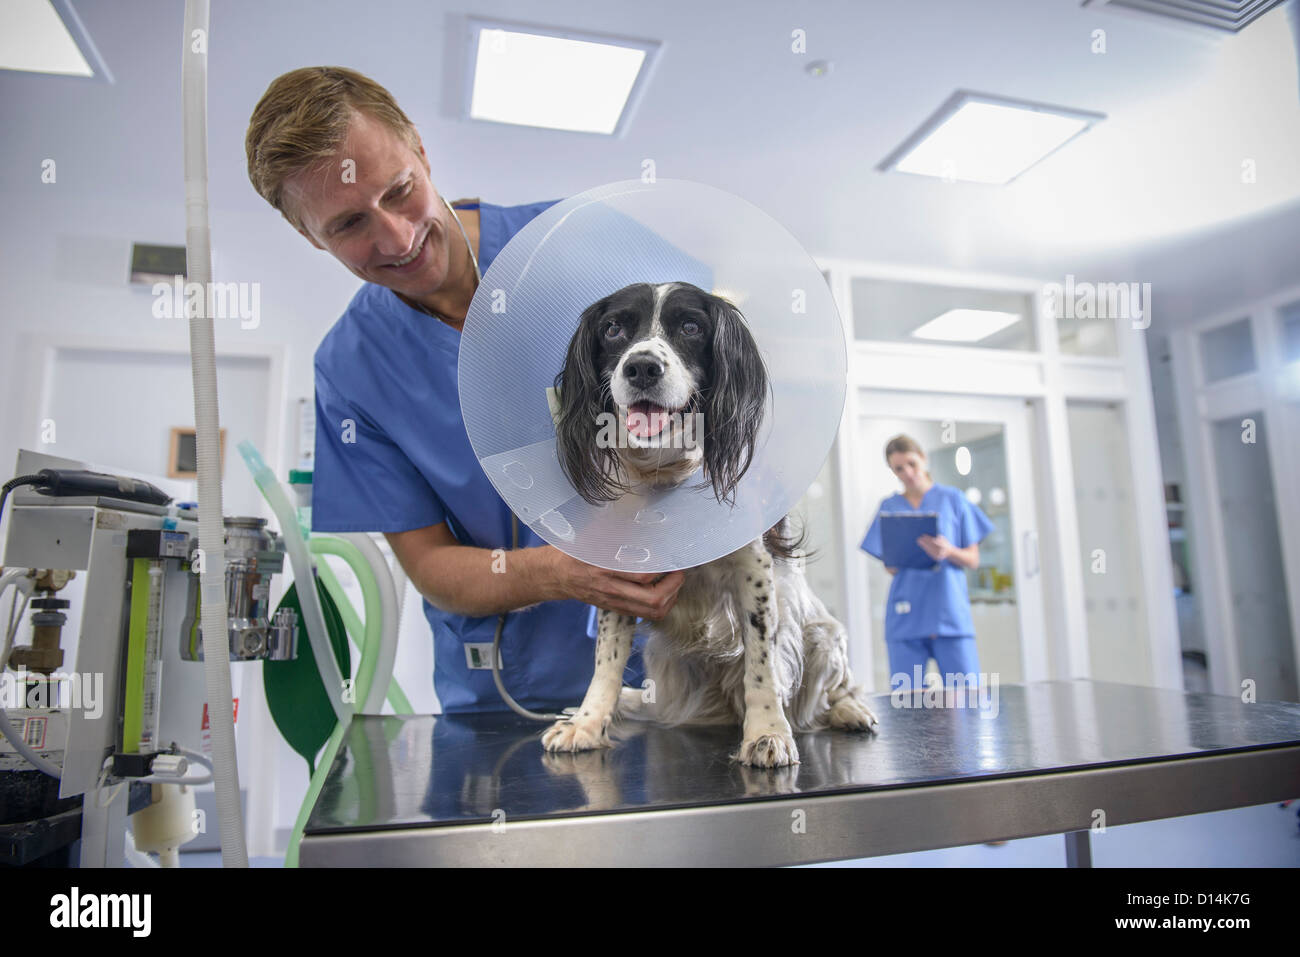 Veterinarian examining dog in cone - Stock Image